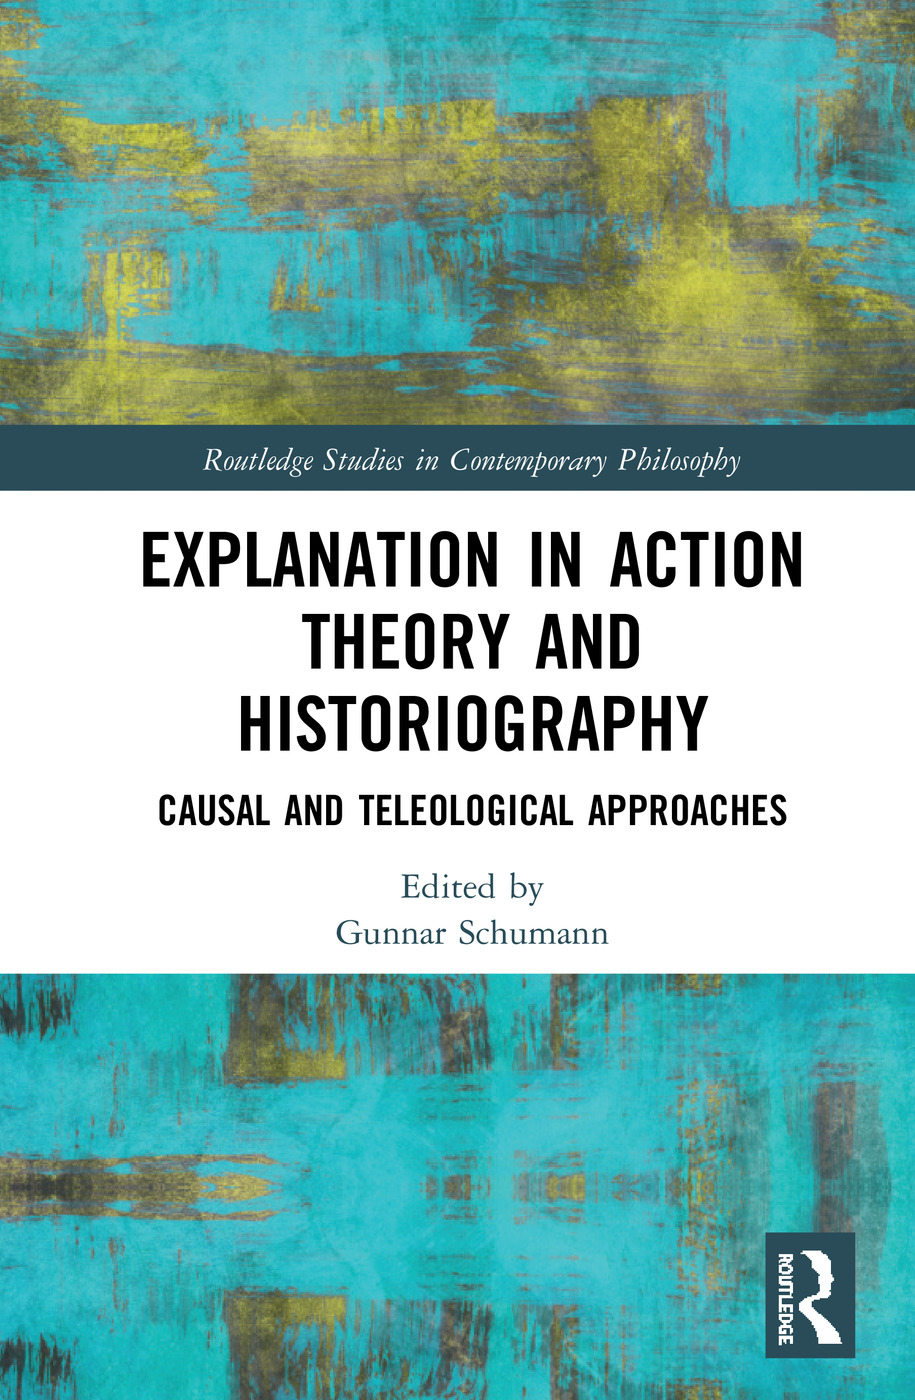 Explanation in Action Theory and Historiography